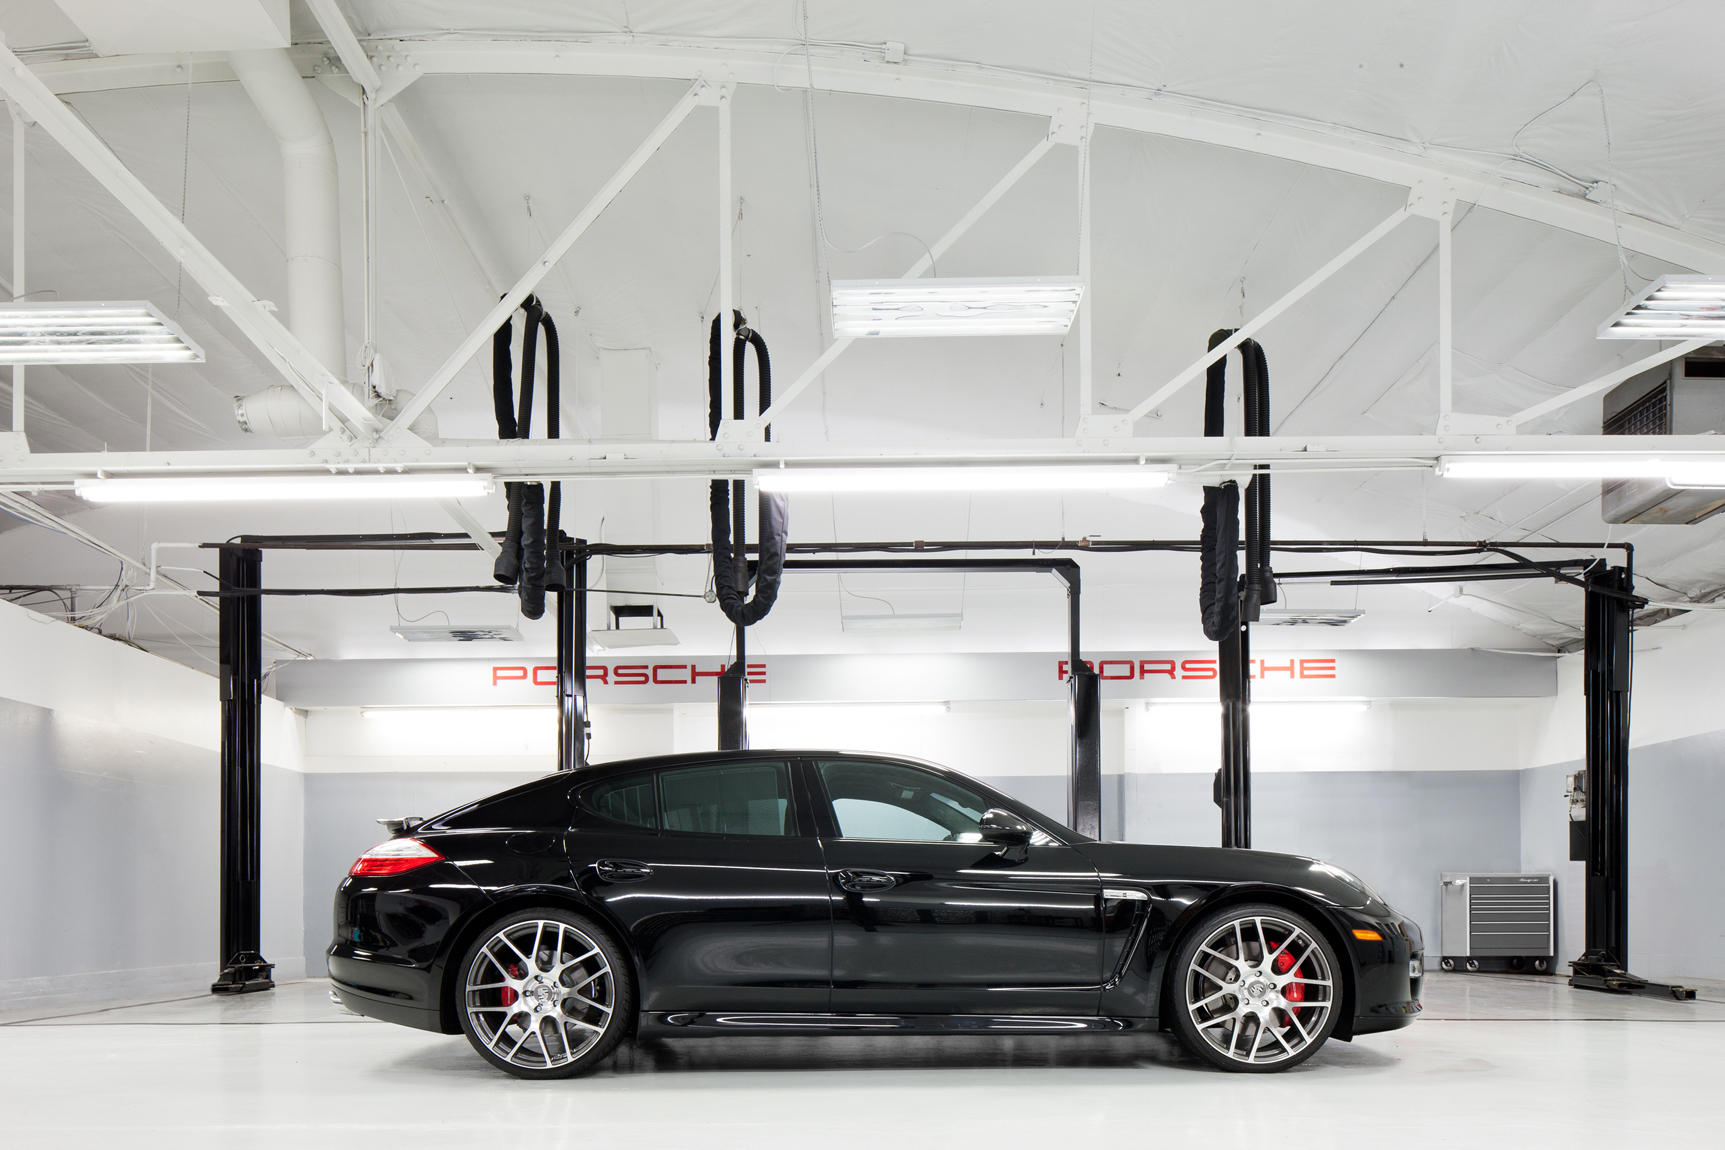 Interior high key, view of  black  Porsche Panamera in a service bay with white and gray walls.